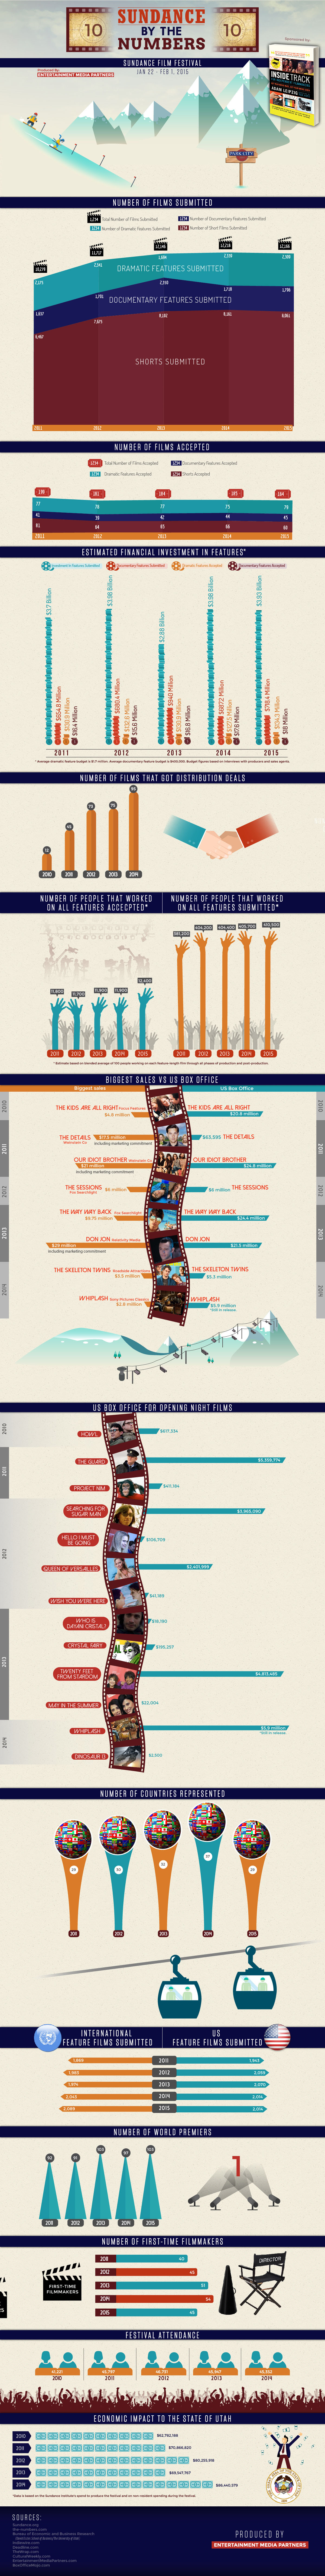 Sundance By the Numbers